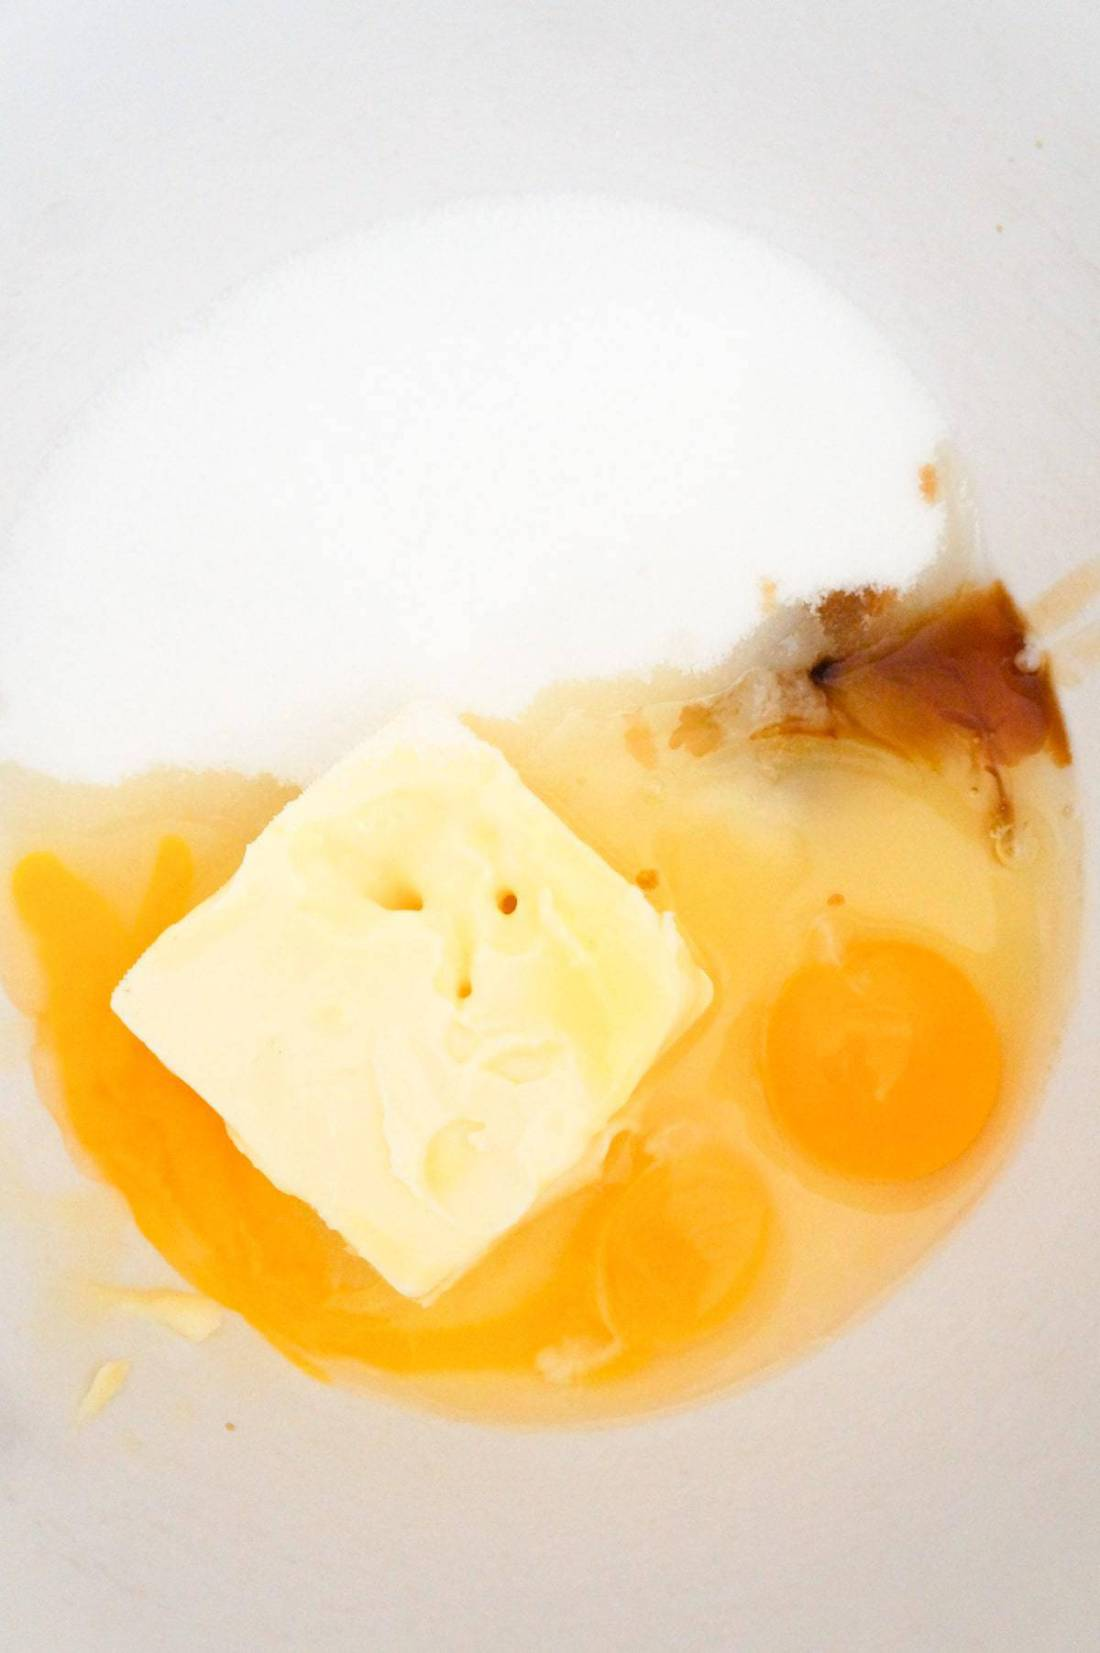 sugar, softened butter, eggs and vanilla extract in a mixing bowl